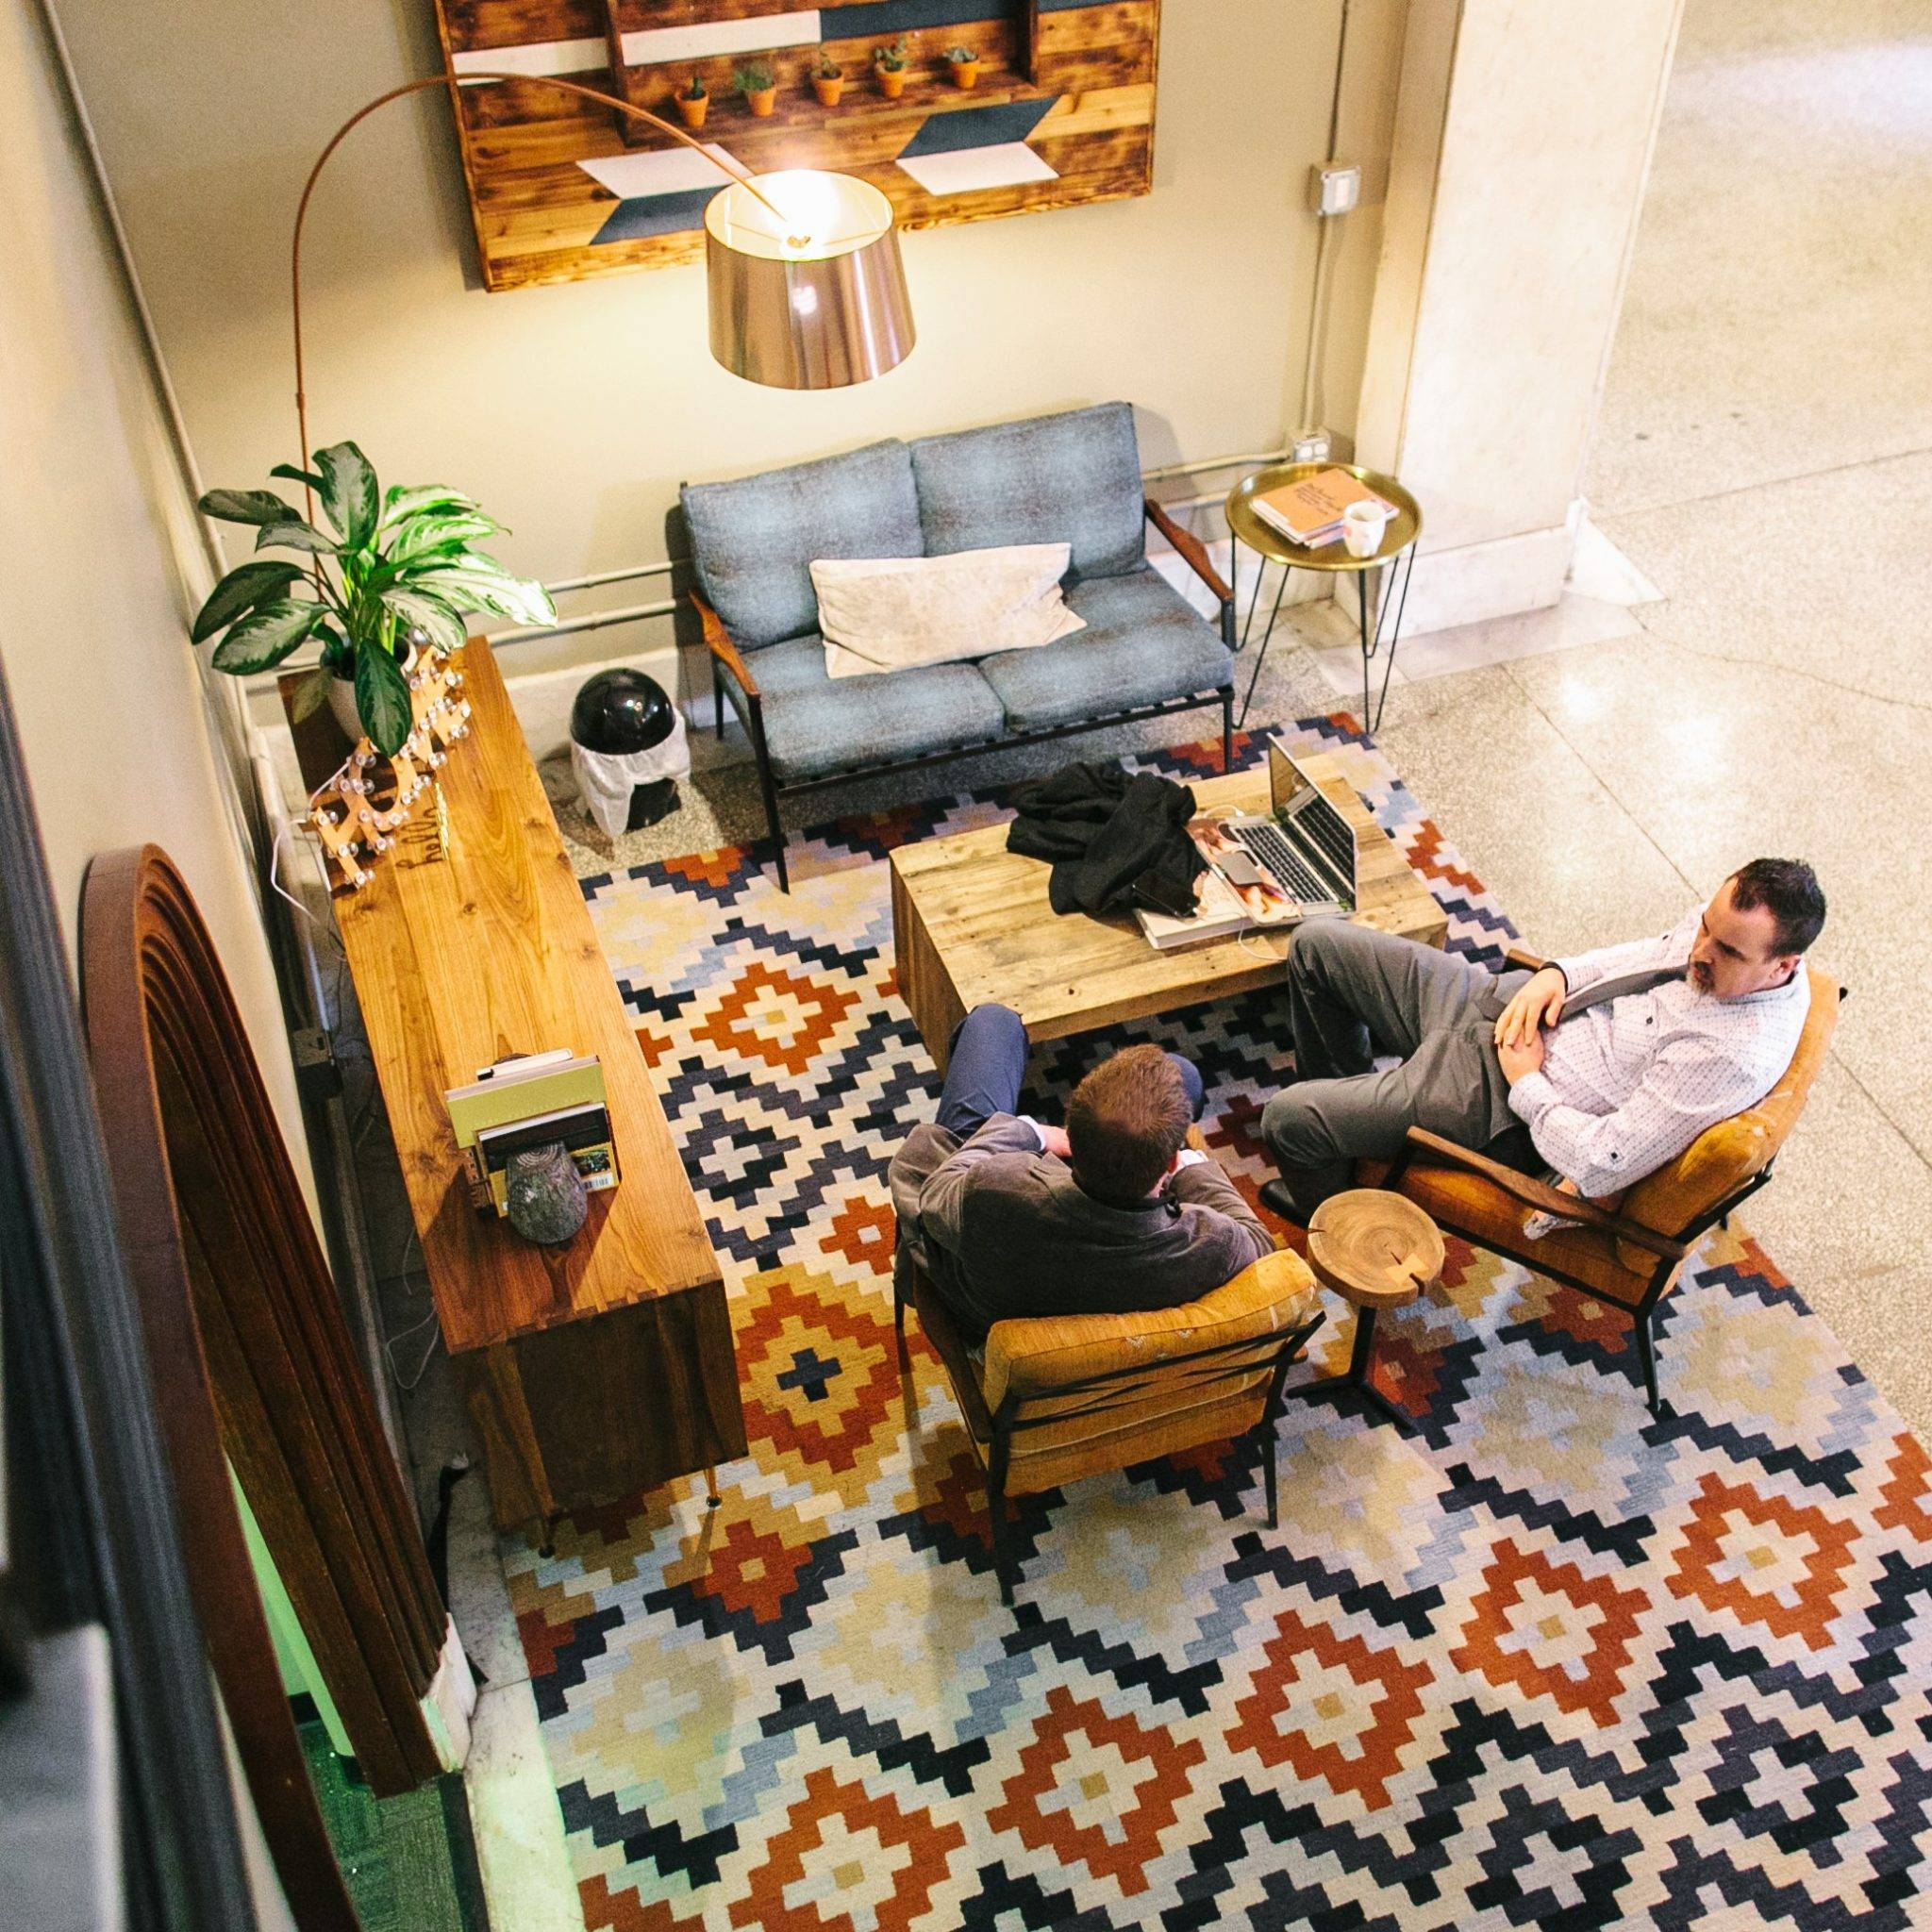 Review: ushering in a new era for the coworking phenomenon